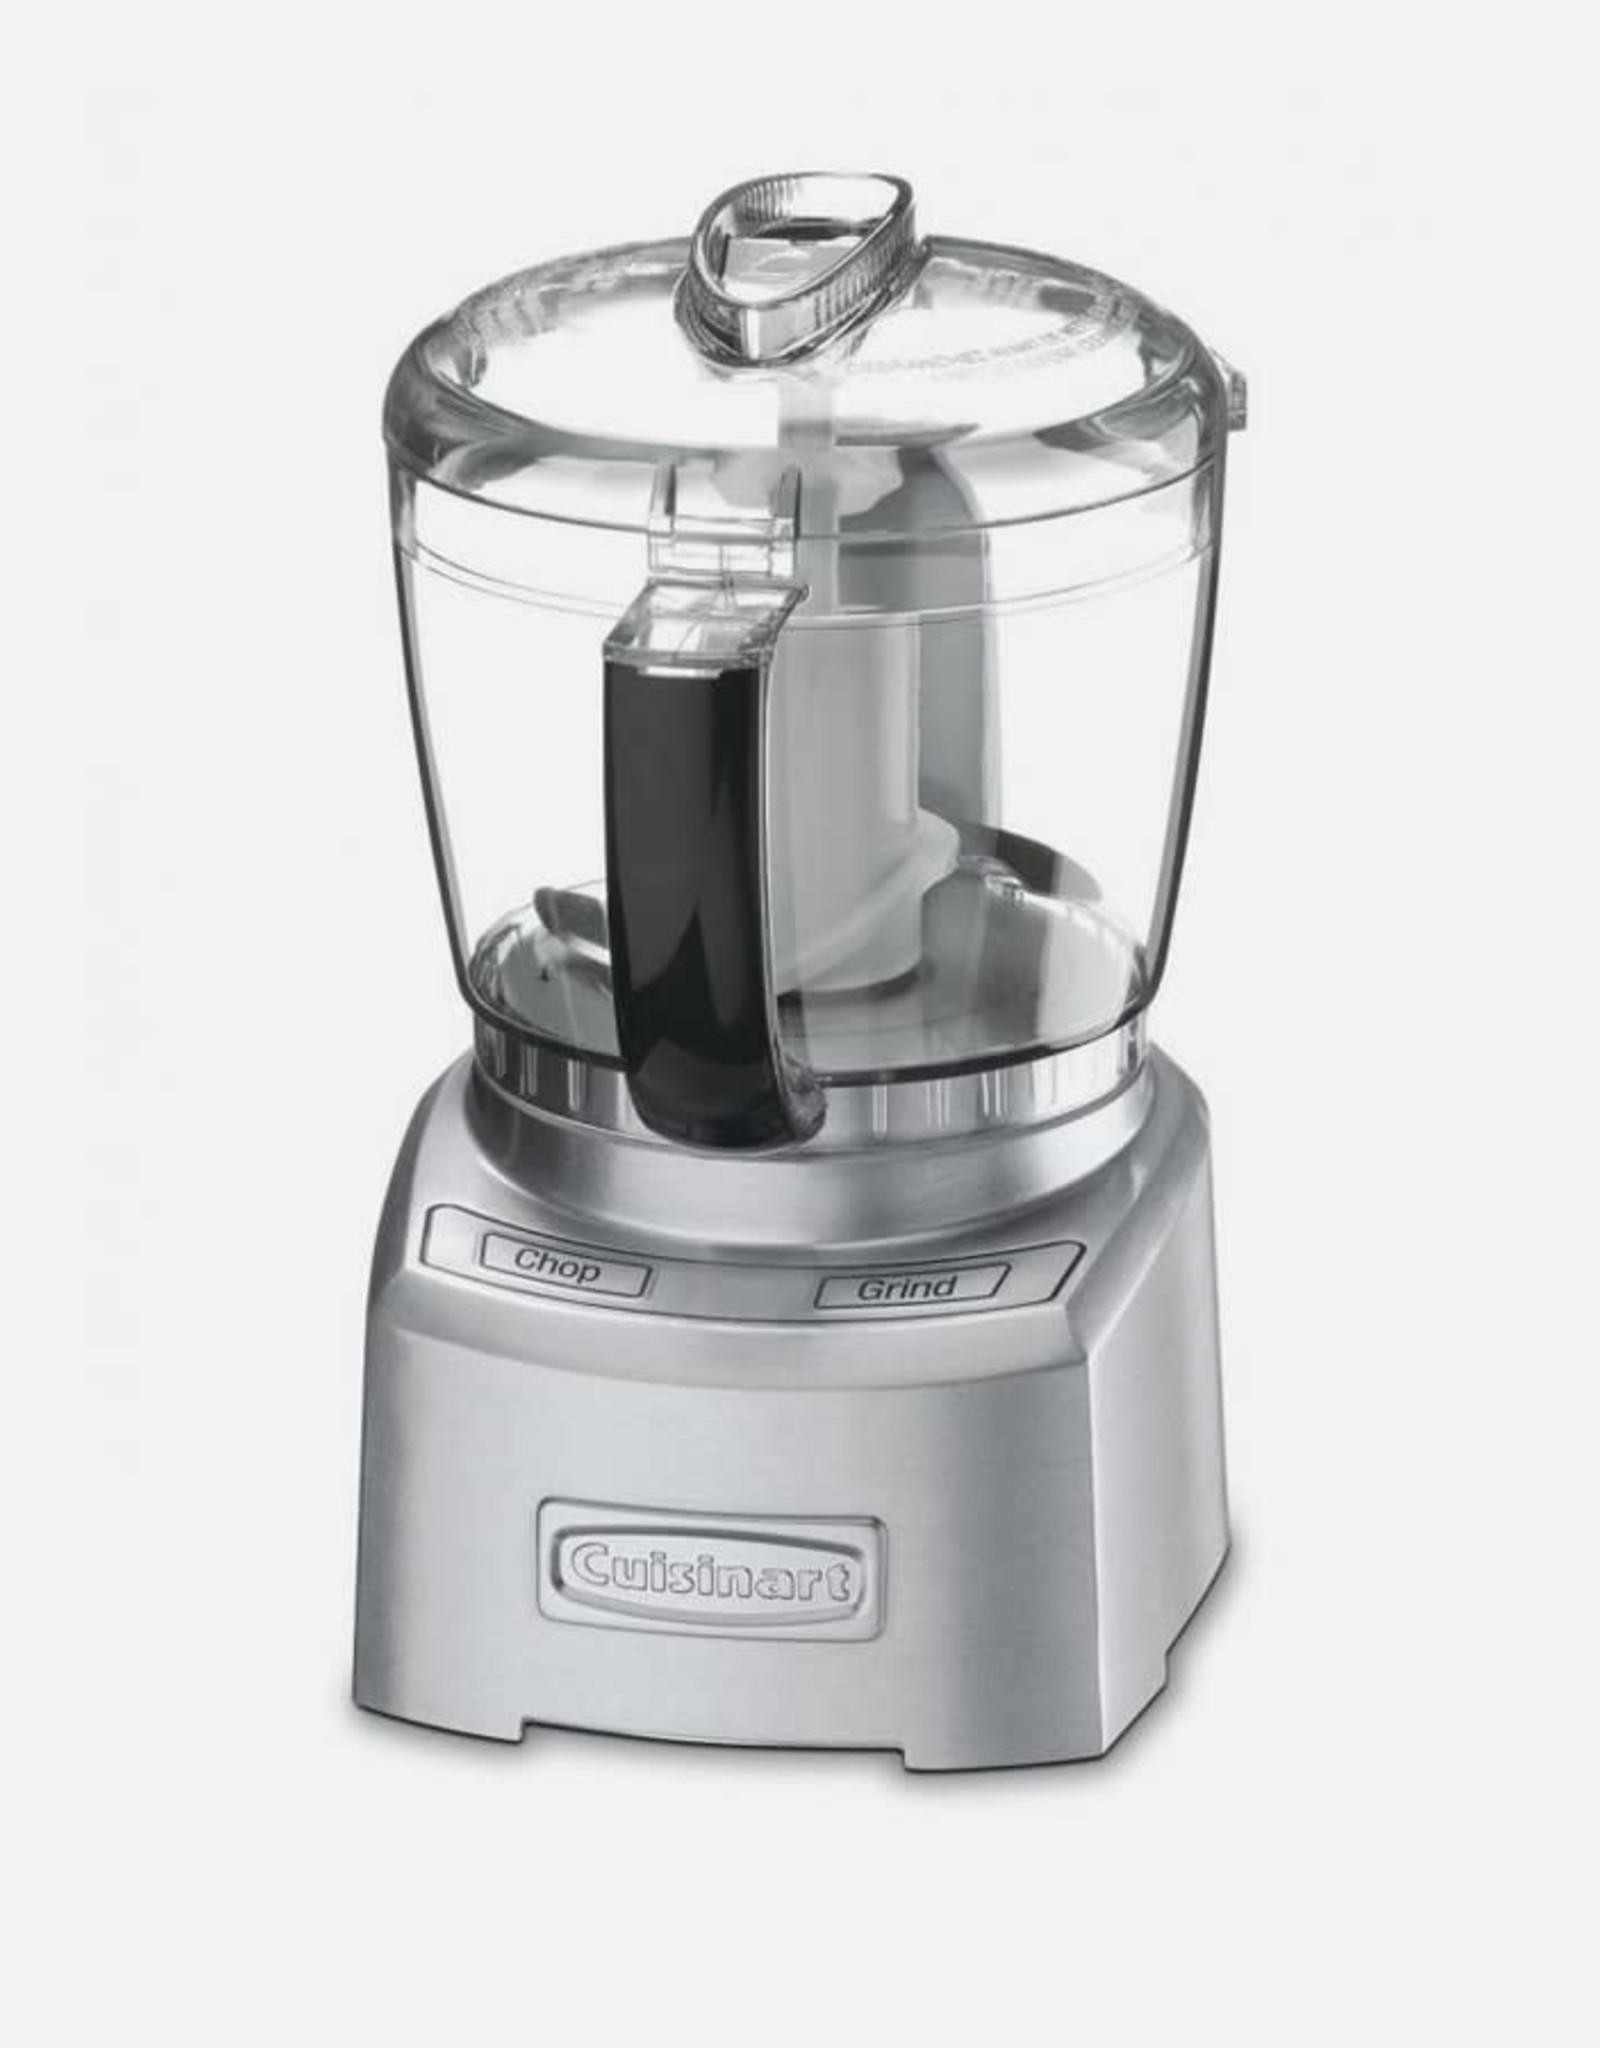 Cuisinart Elite Food Processor, 4c., Die-Cast